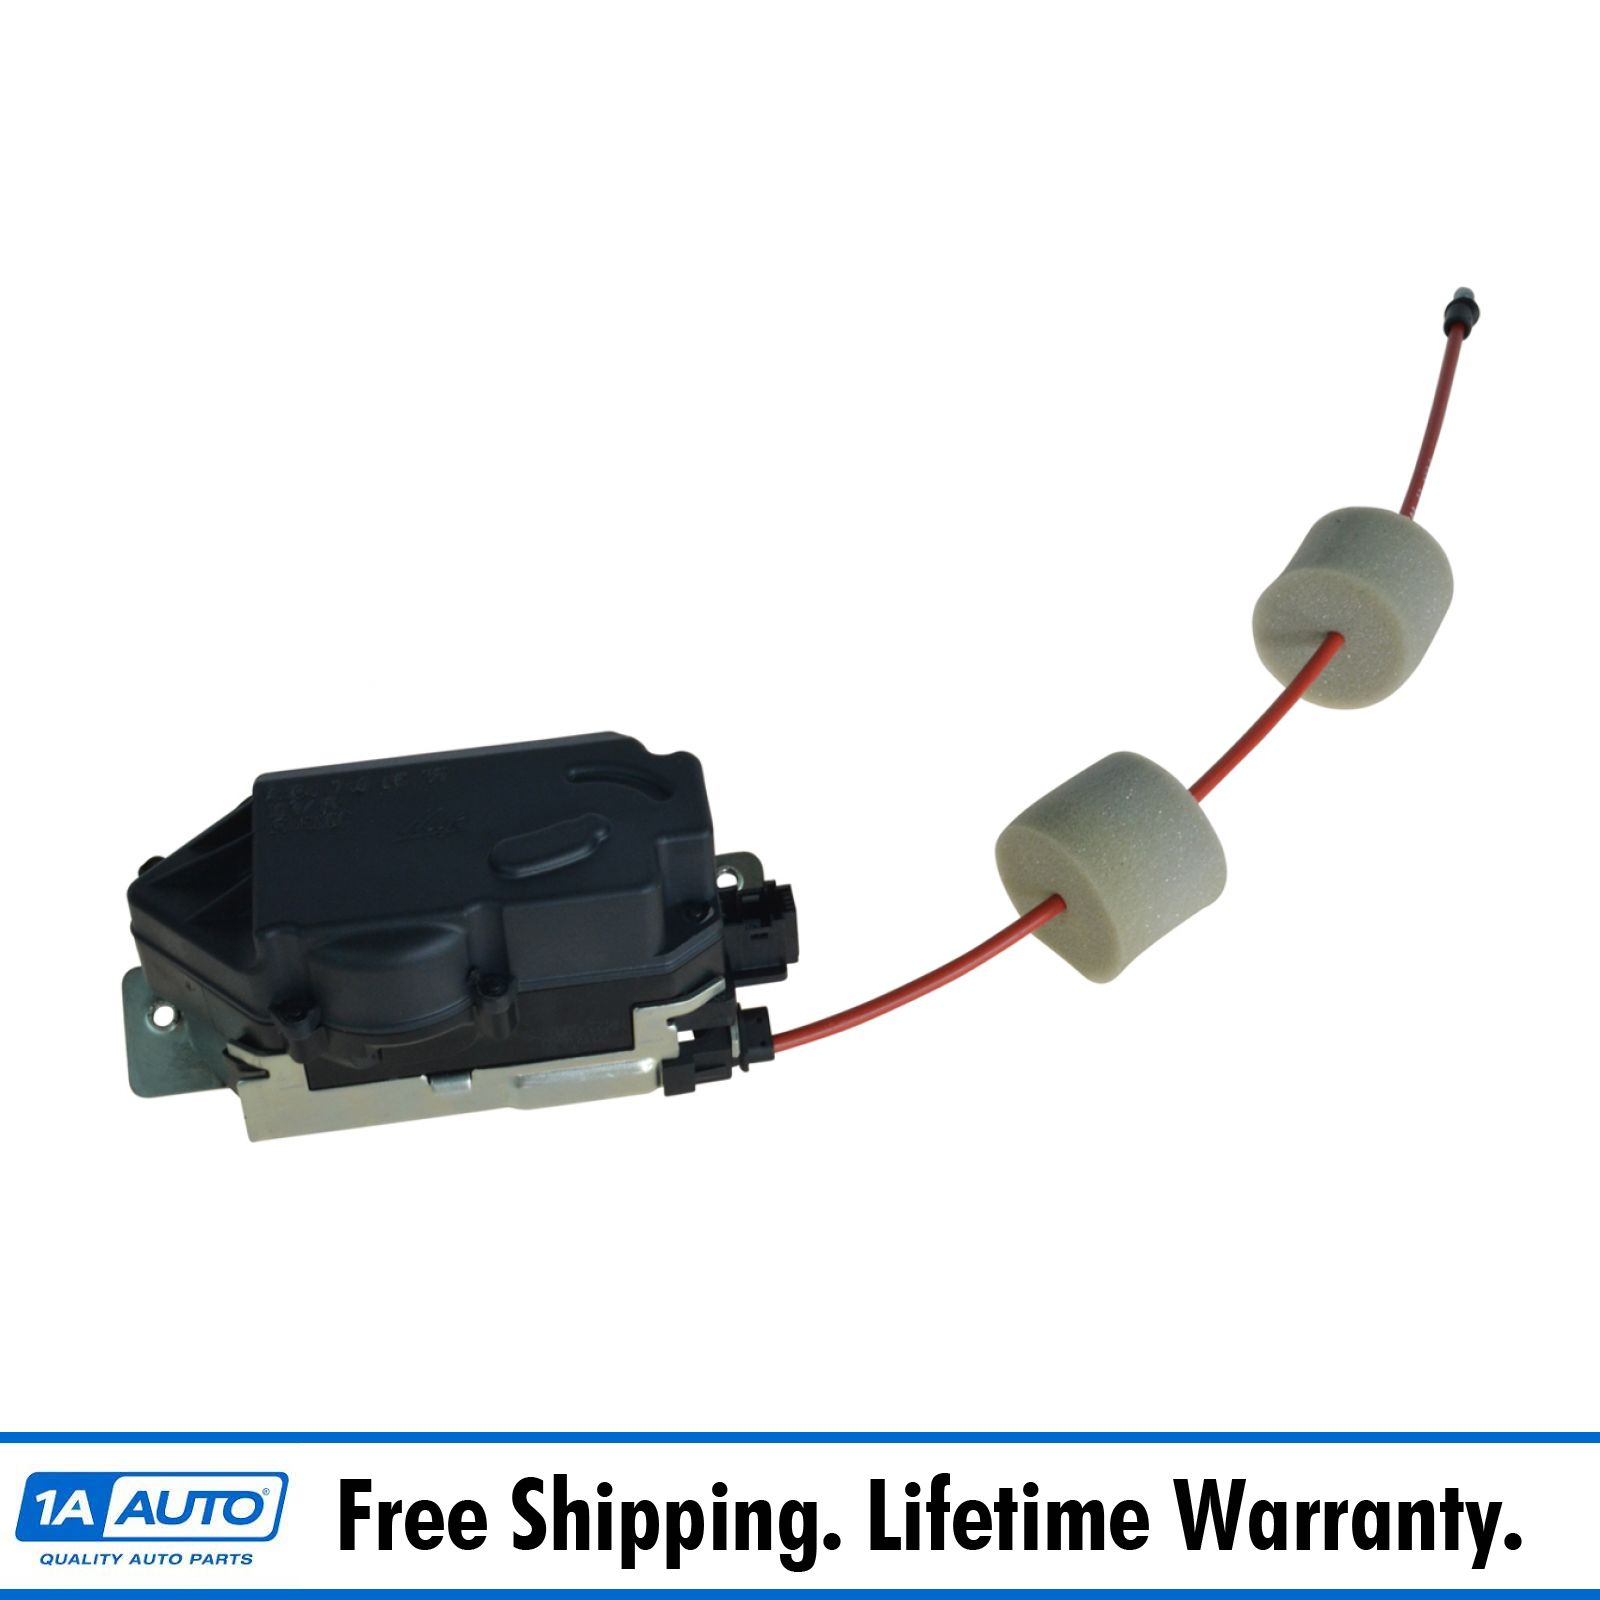 Details about OEM 1647400635 Lock Latch with Actuator Lift Gate Mounted for  Mercedes Benz New